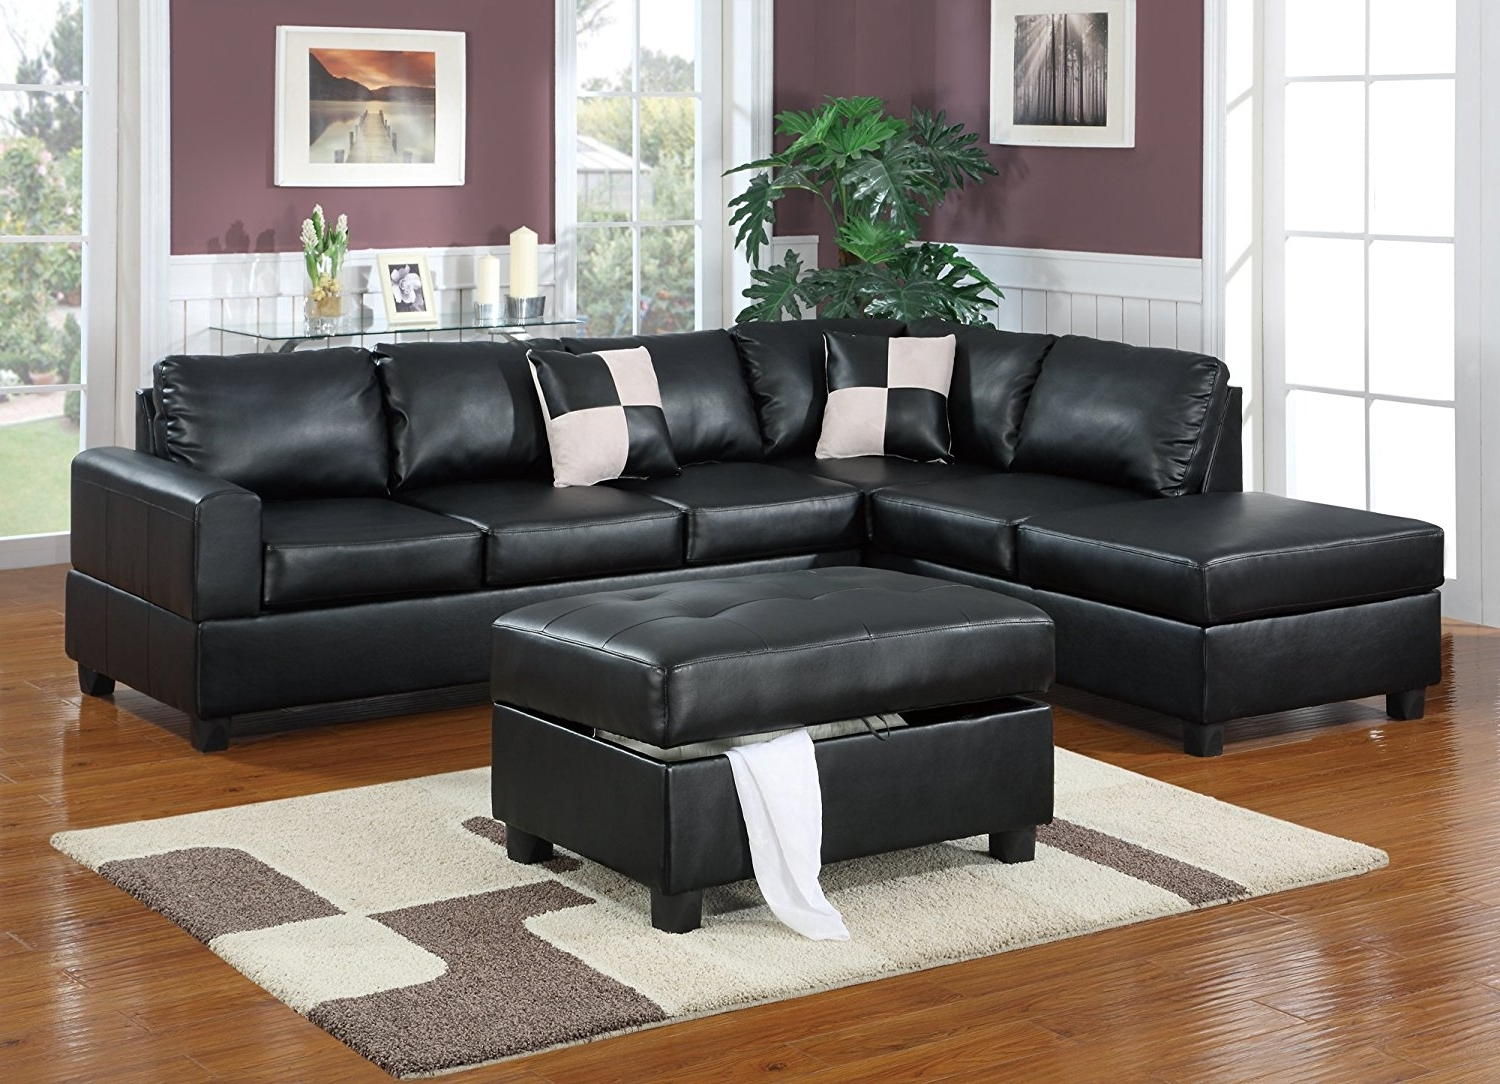 Amazon: Bobkona Hampshire Collection 3 Piece Sectional Sofa Regarding Most Recently Released Black Leather Sectionals With Ottoman (View 9 of 15)